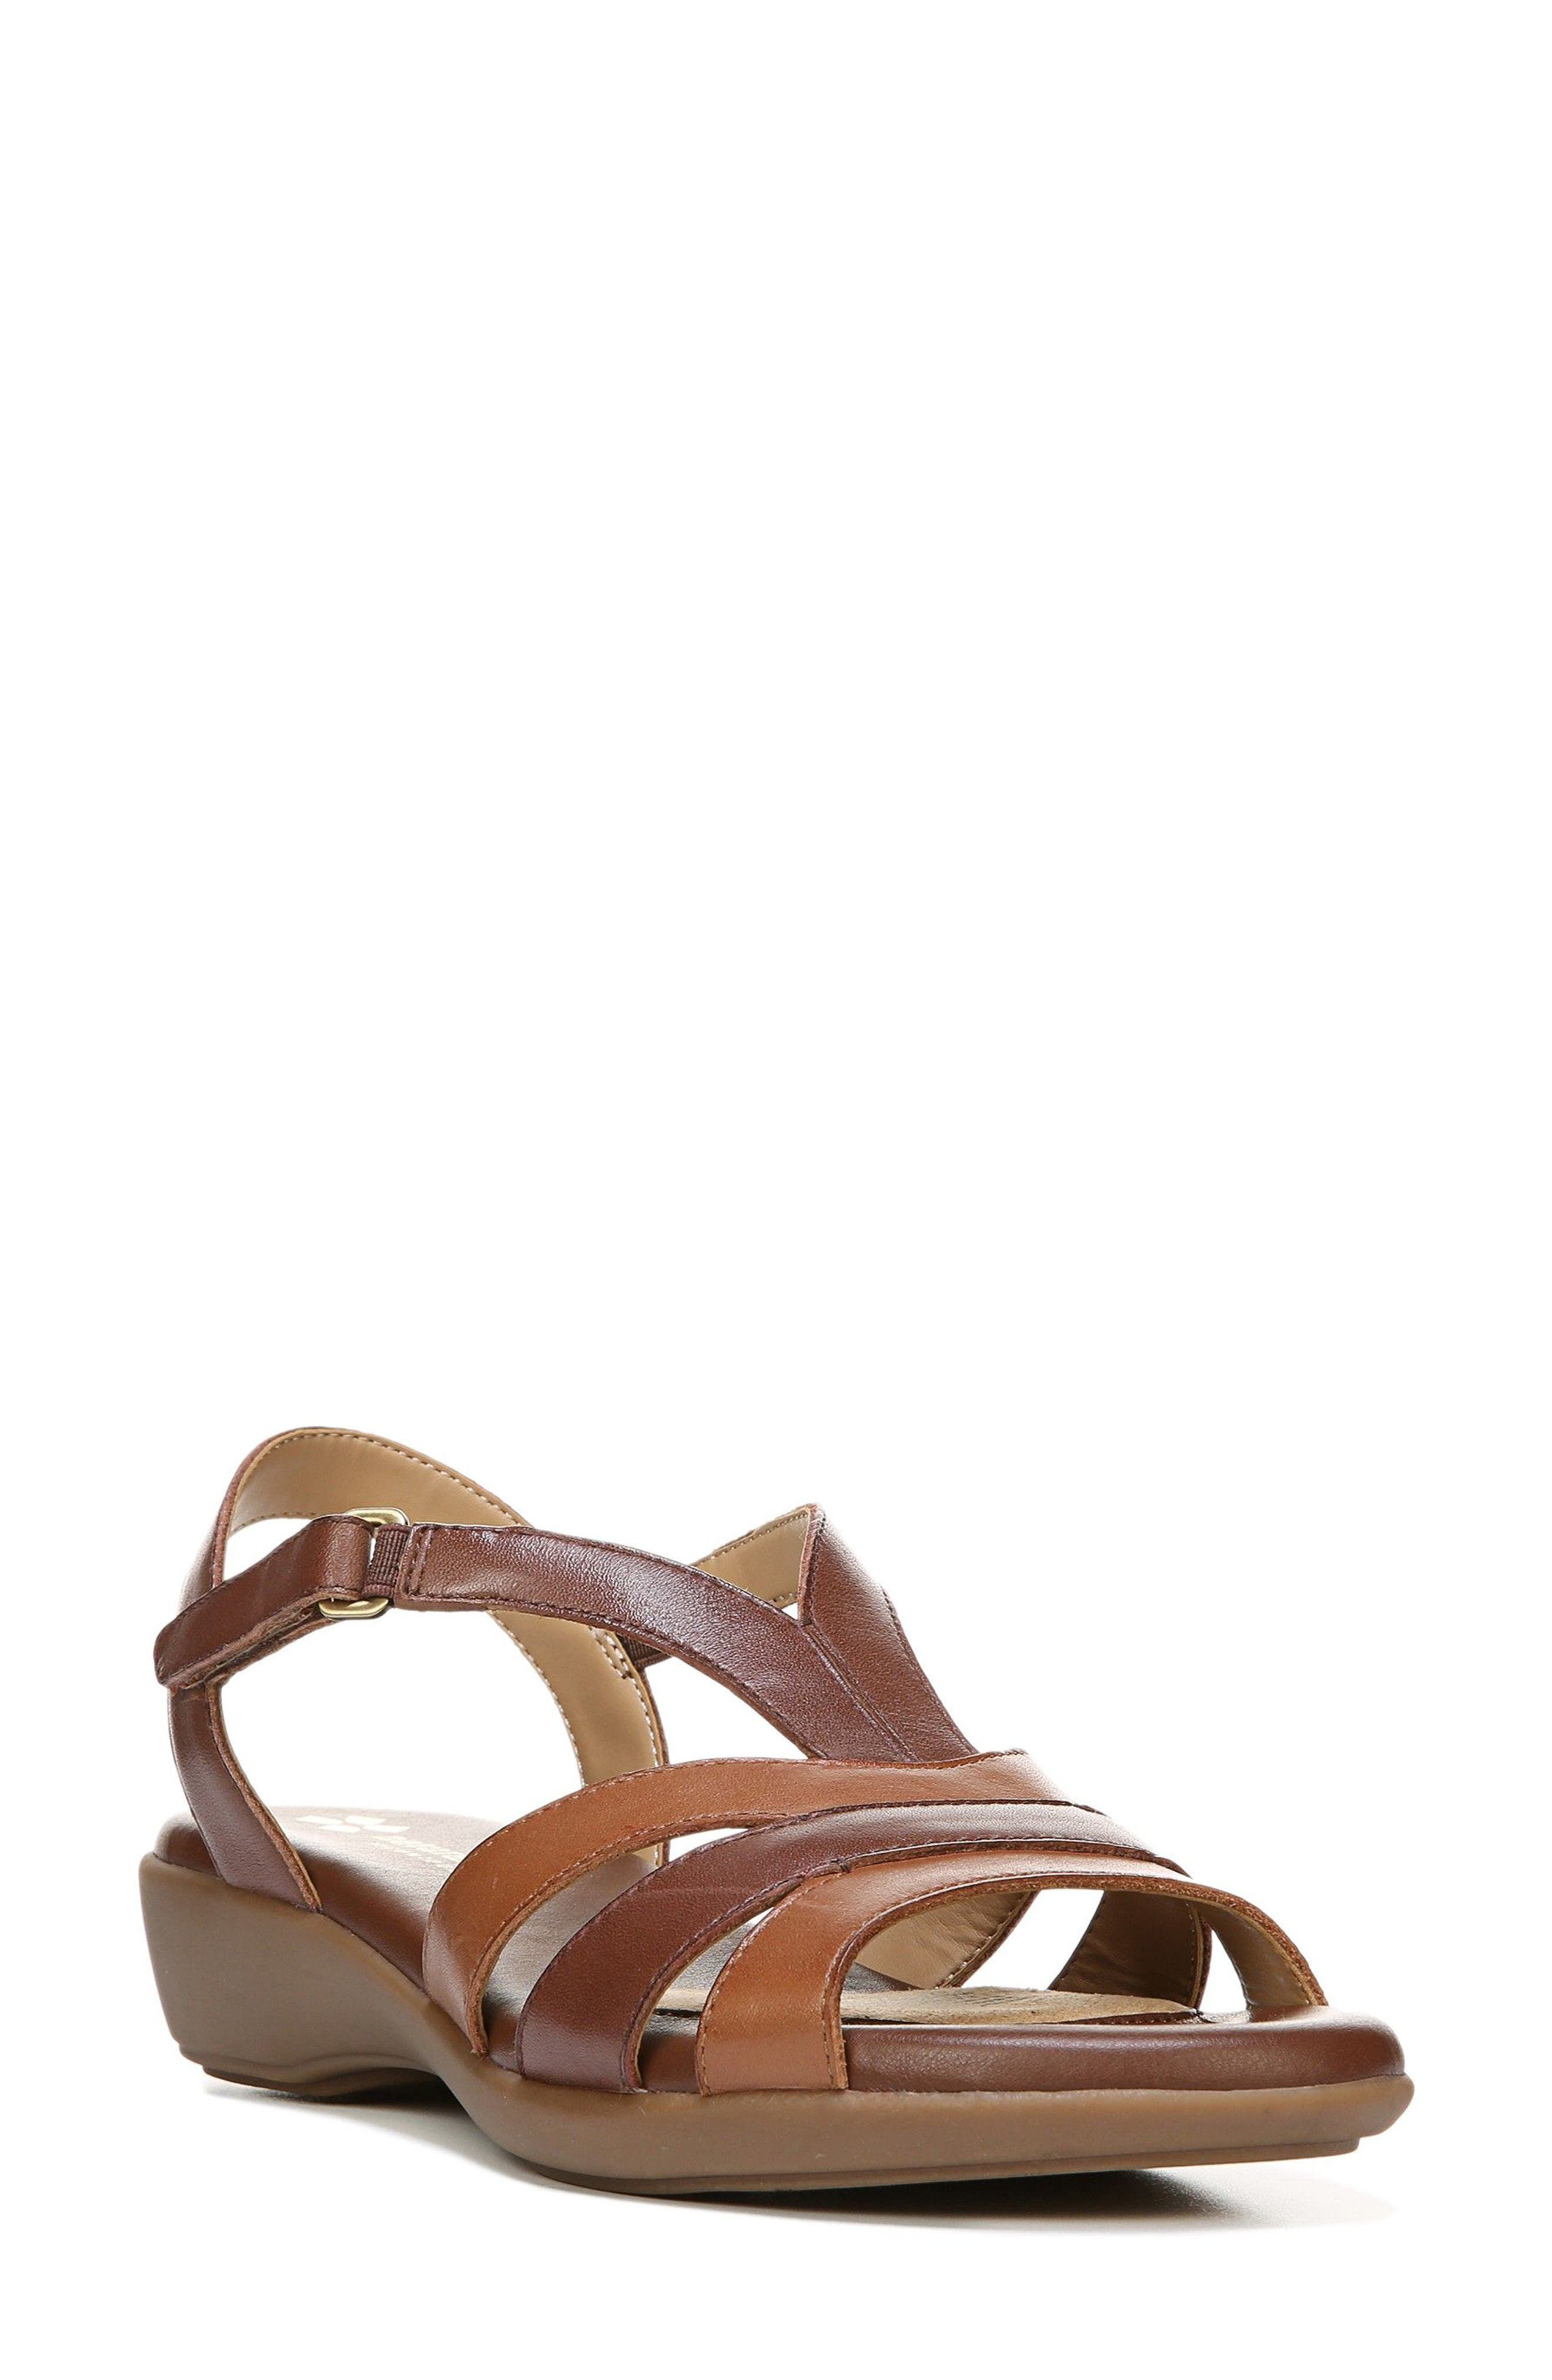 Neina Sandal,                         Main,                         color, BROWN LEATHER